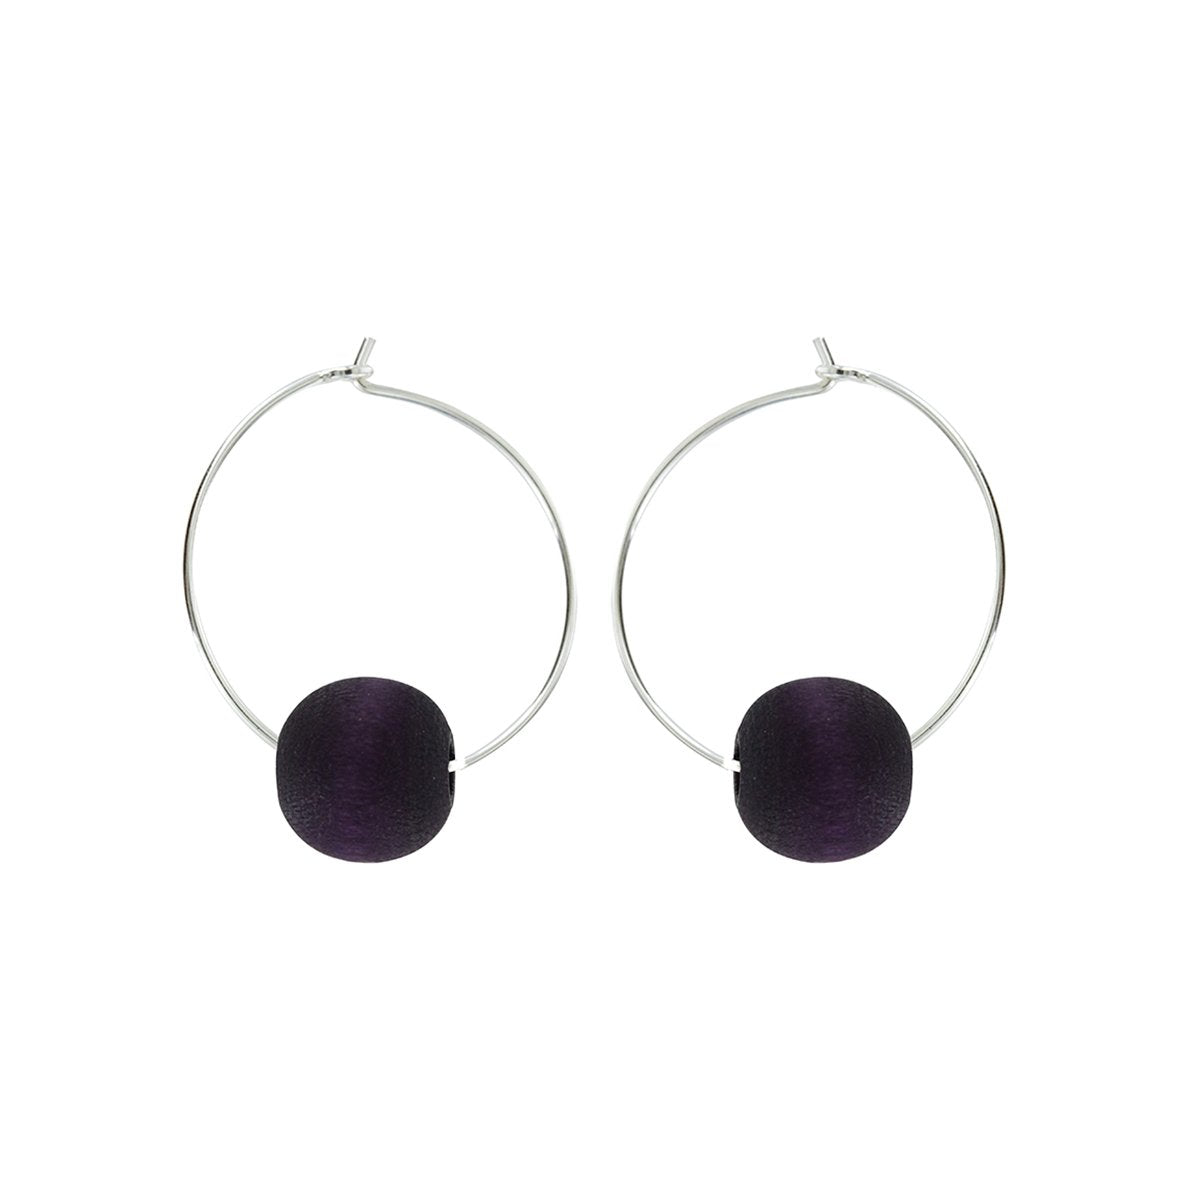 Kehrä earrings